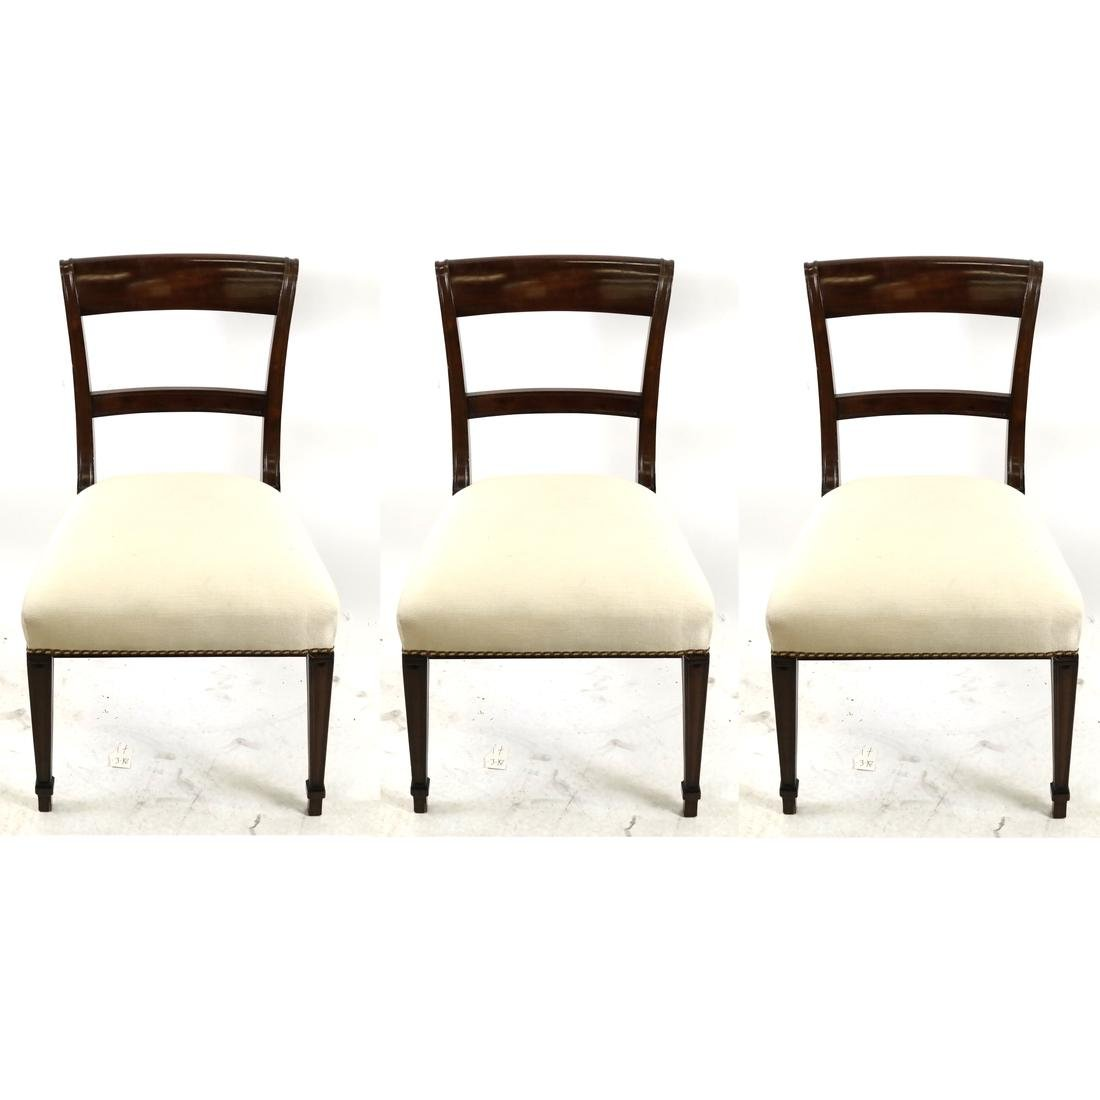 Set of 3 Biedermeier-Style Side Chairs